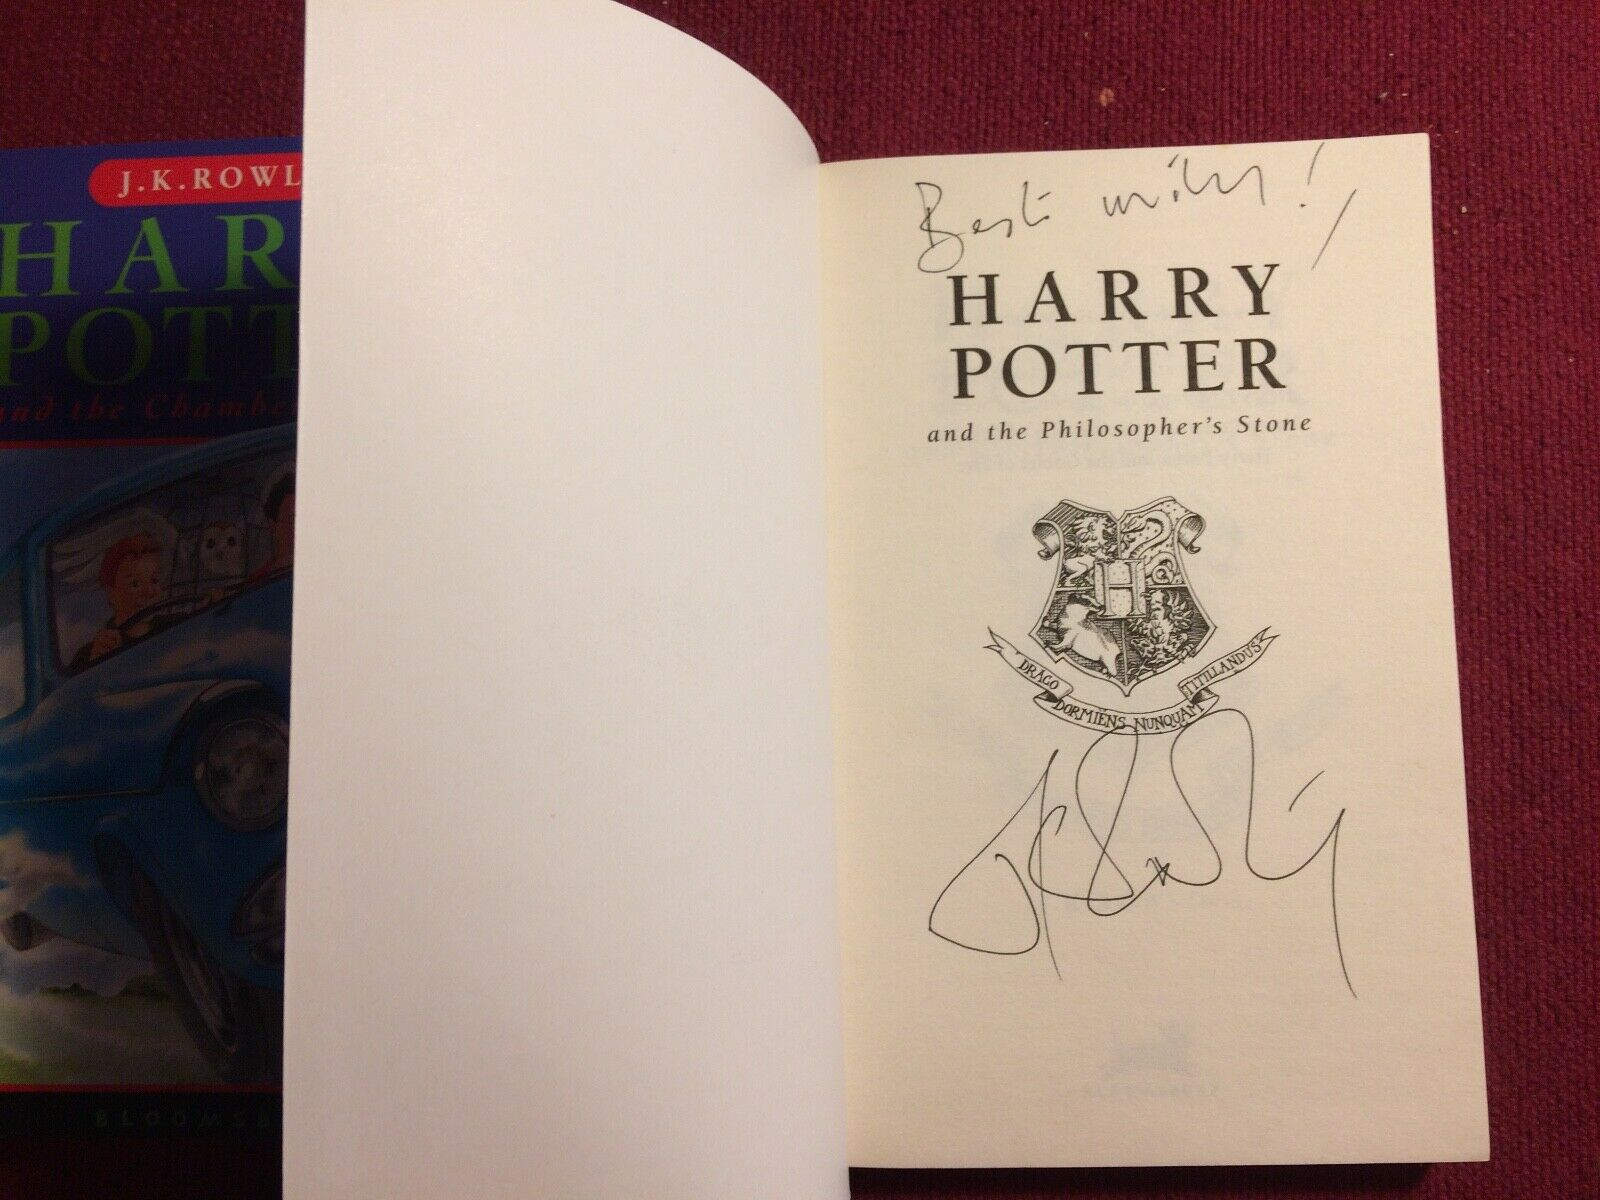 J.K. Rowling signature forgery found inside a Harry Potter and the Philosopher's Stone. Sold in a set with a forged Chamber of Secrets. Sold by MColes78 on eBay for 250 GBP.